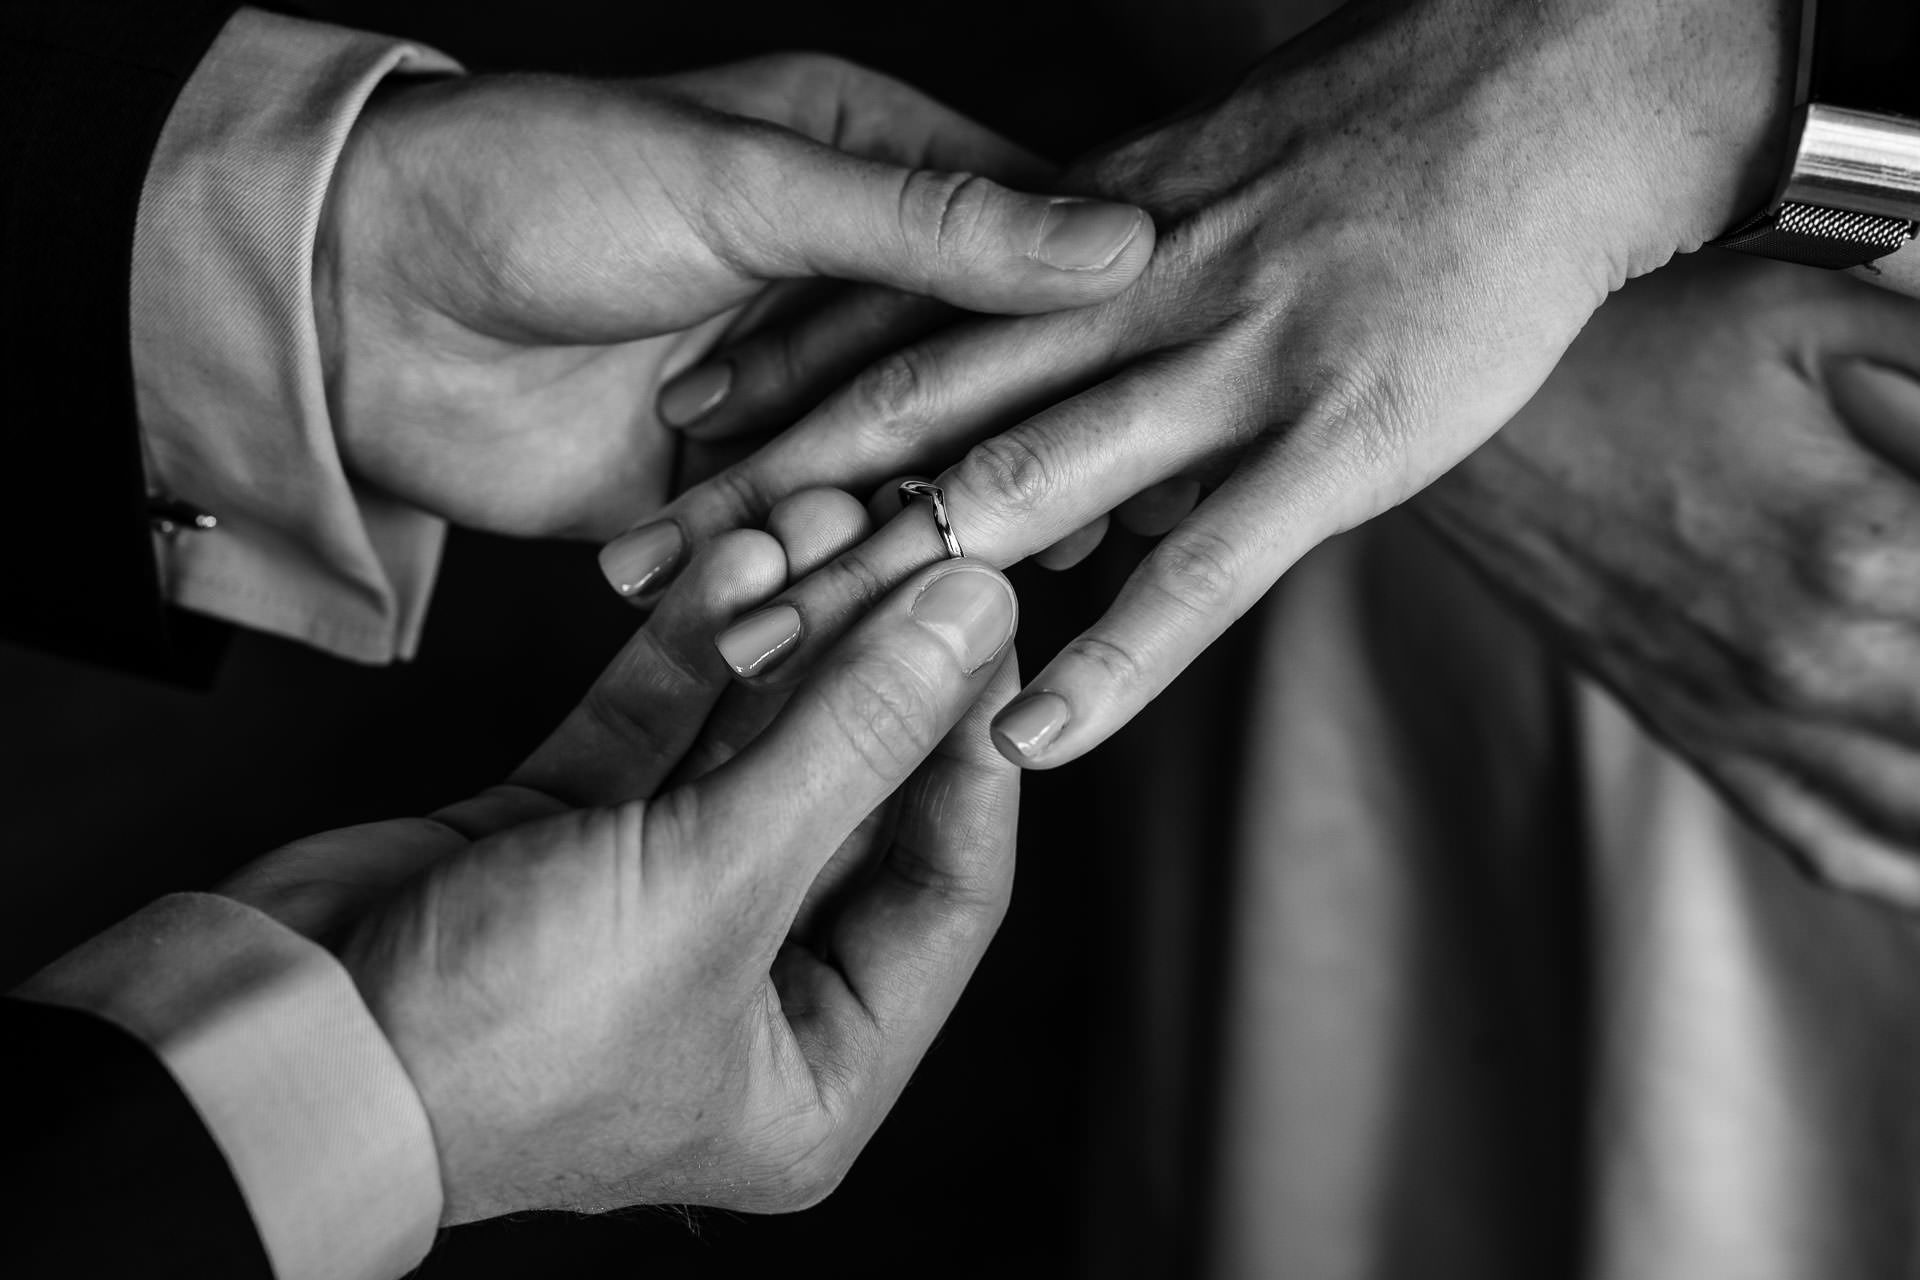 Berkshire United Kingdom Elopement Rings Picture | The groom putting on the bride's ring